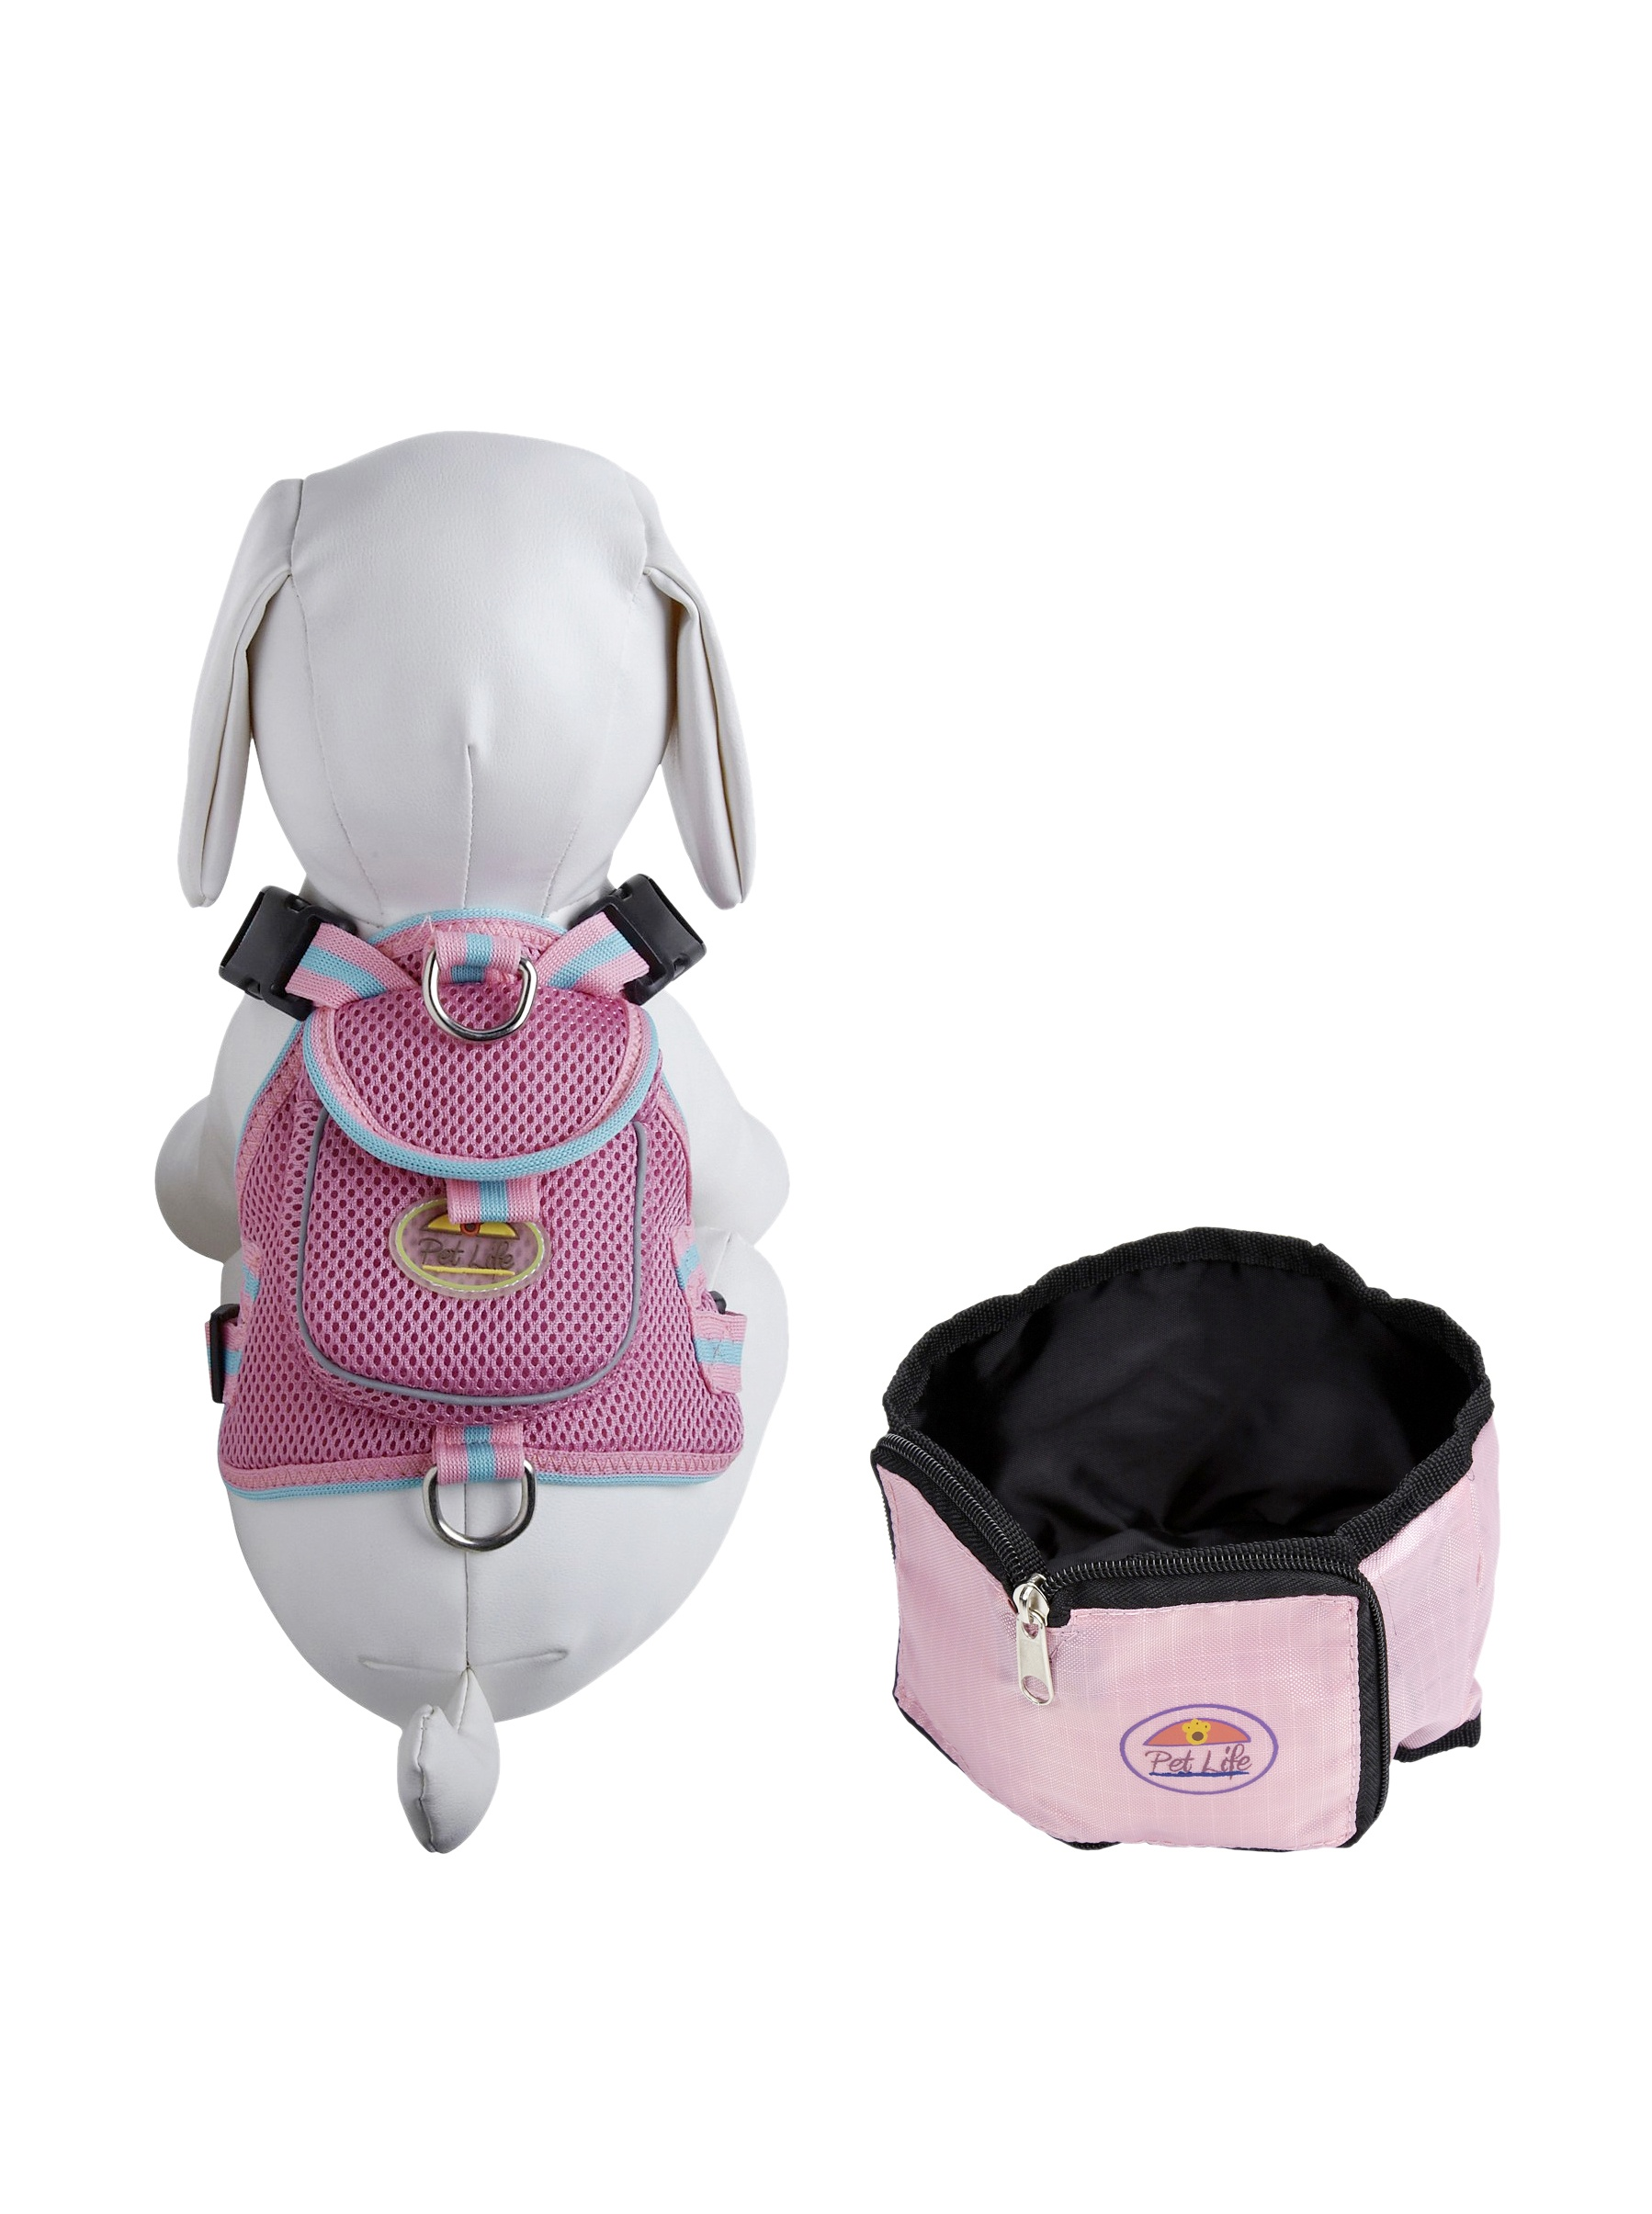 Pet Life Harness and Wallet Travel Bowl Set (Pink)